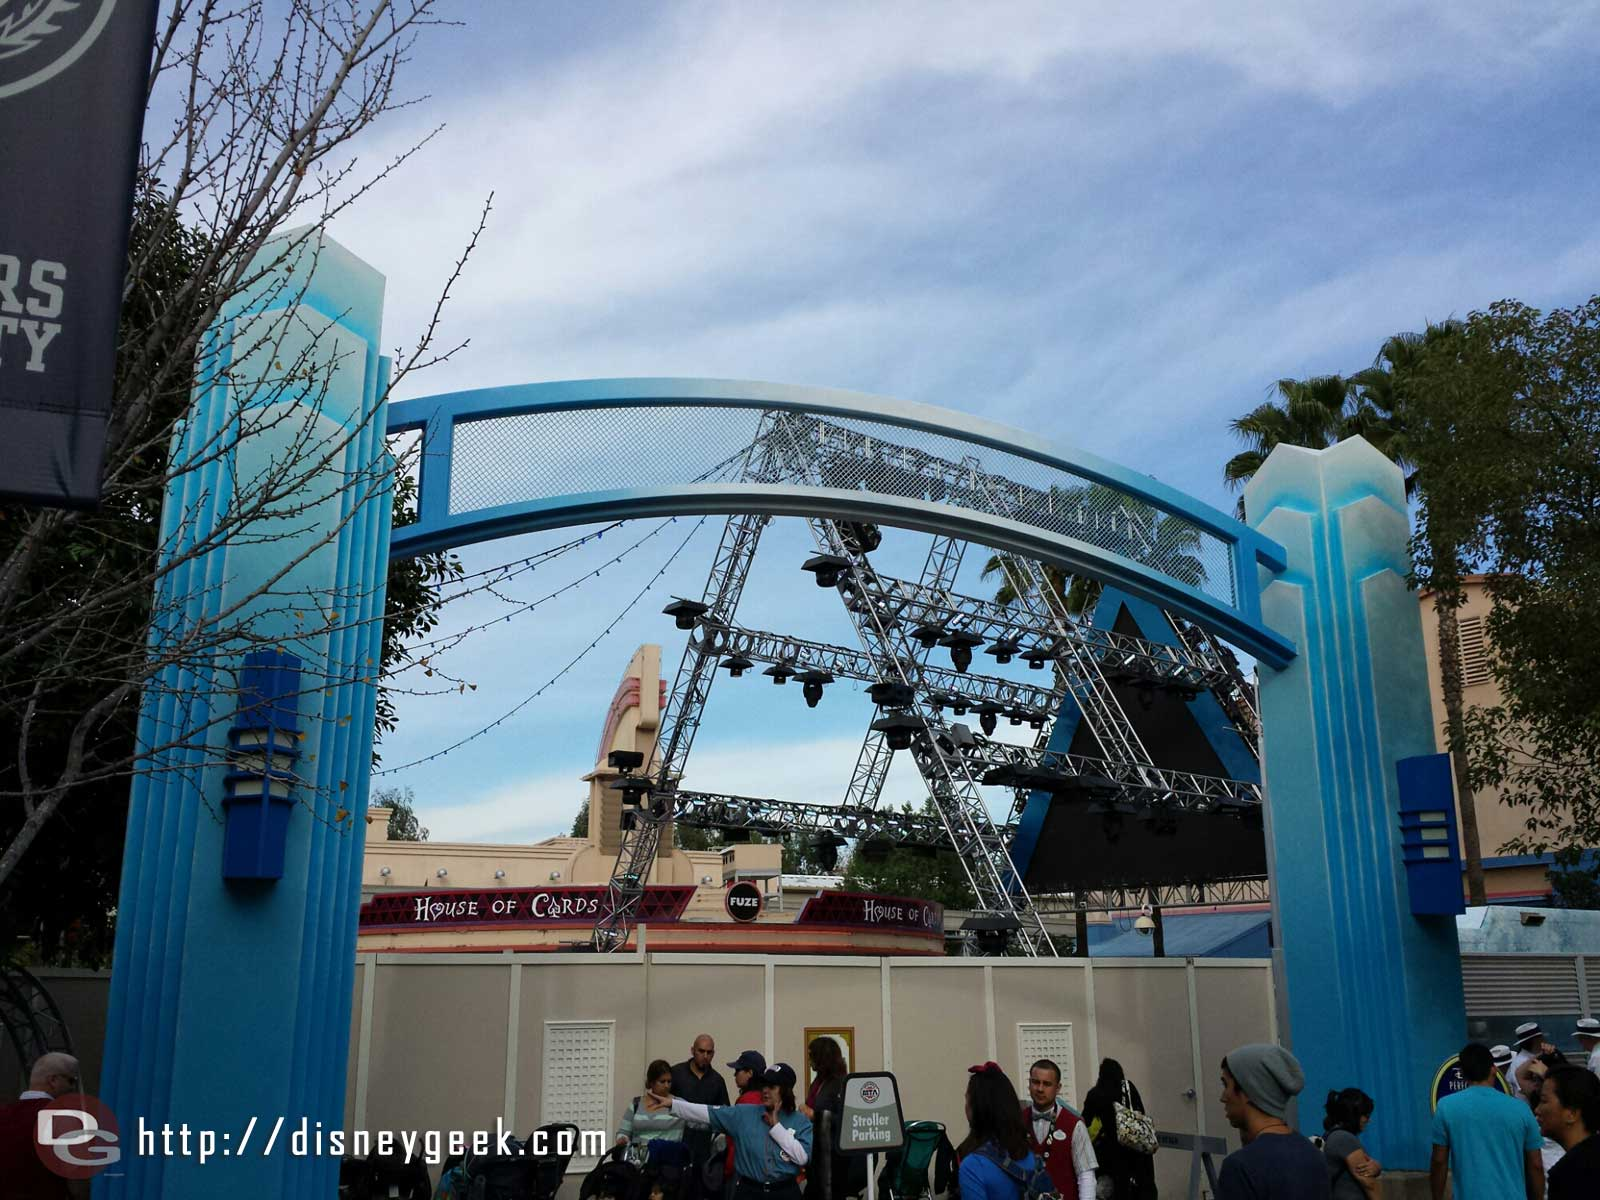 No #FrozenFun today. Walls still up and you can still see some #MadTParty signage too